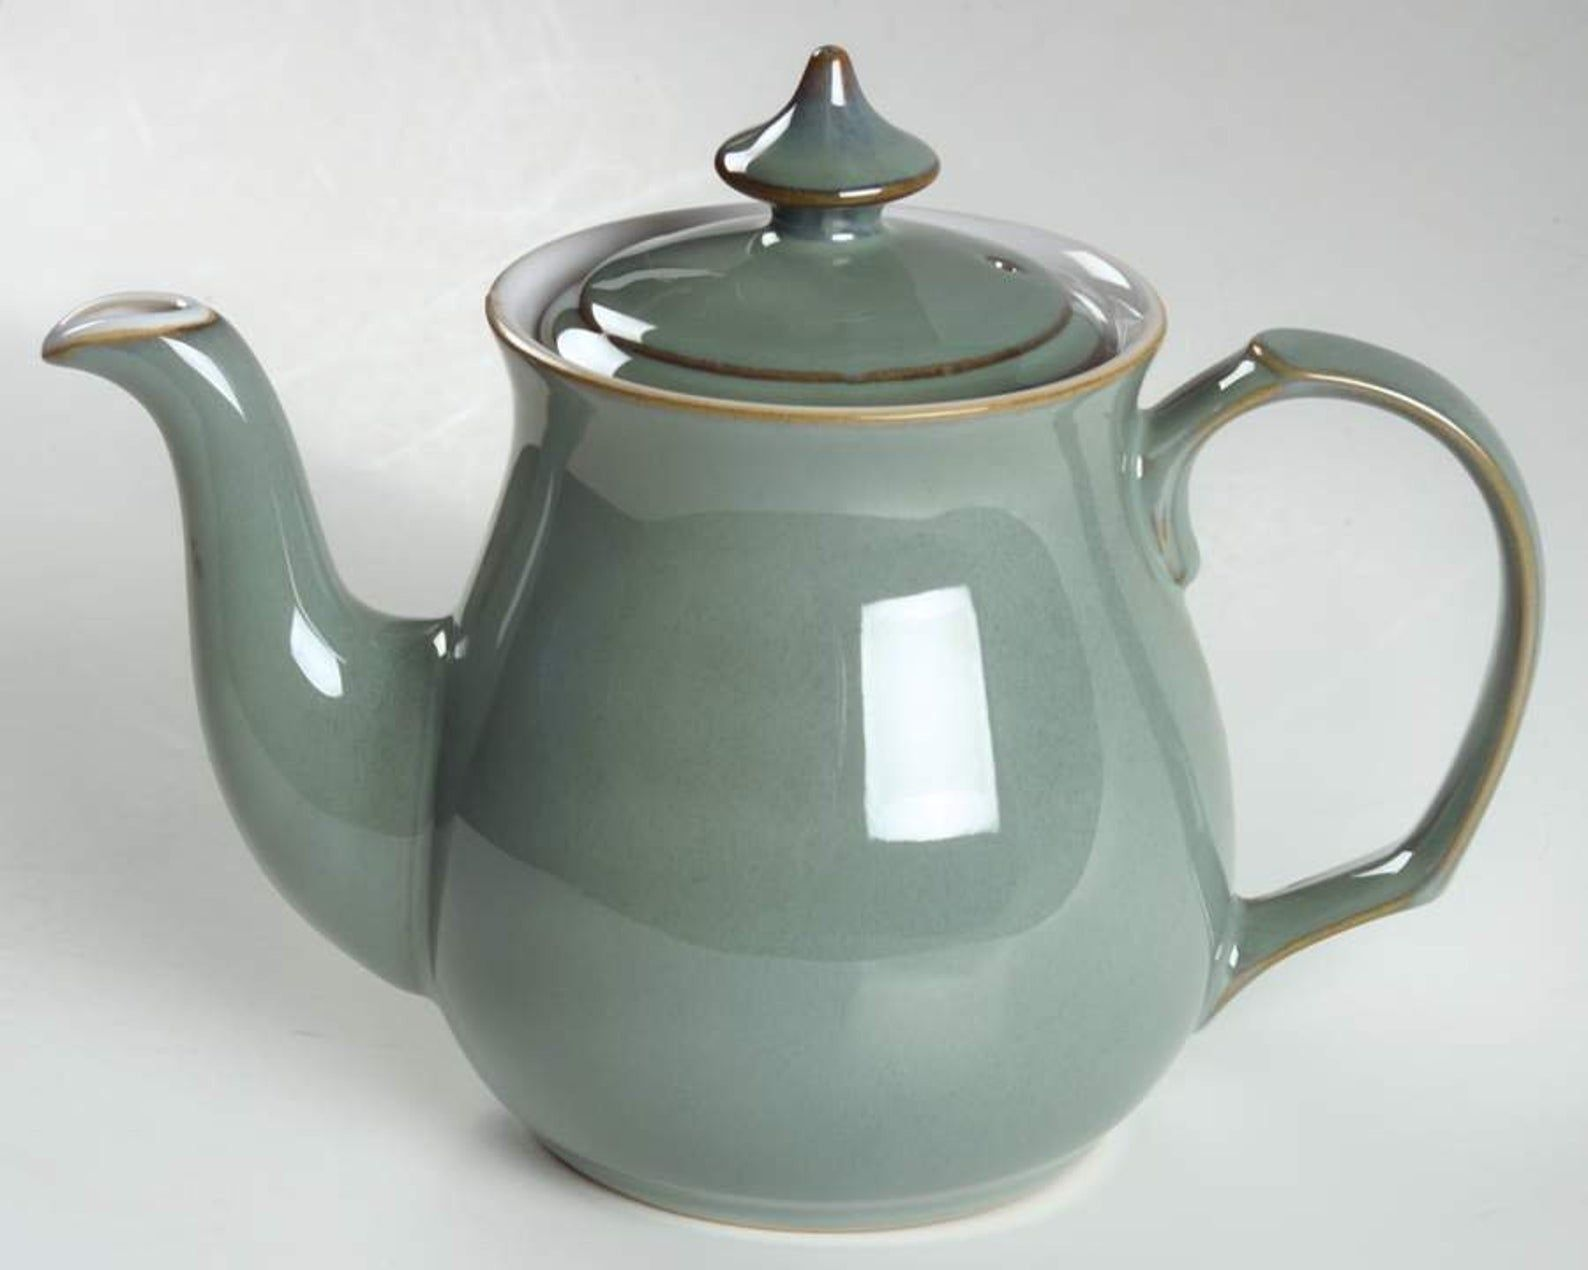 Vintage Late 1980s Denby Regency Green Stoneware Teapot Made In England Shop This English Stoneware Pattern At Buyfromgroov In 2020 Tea Pots Denby Stoneware Teapot